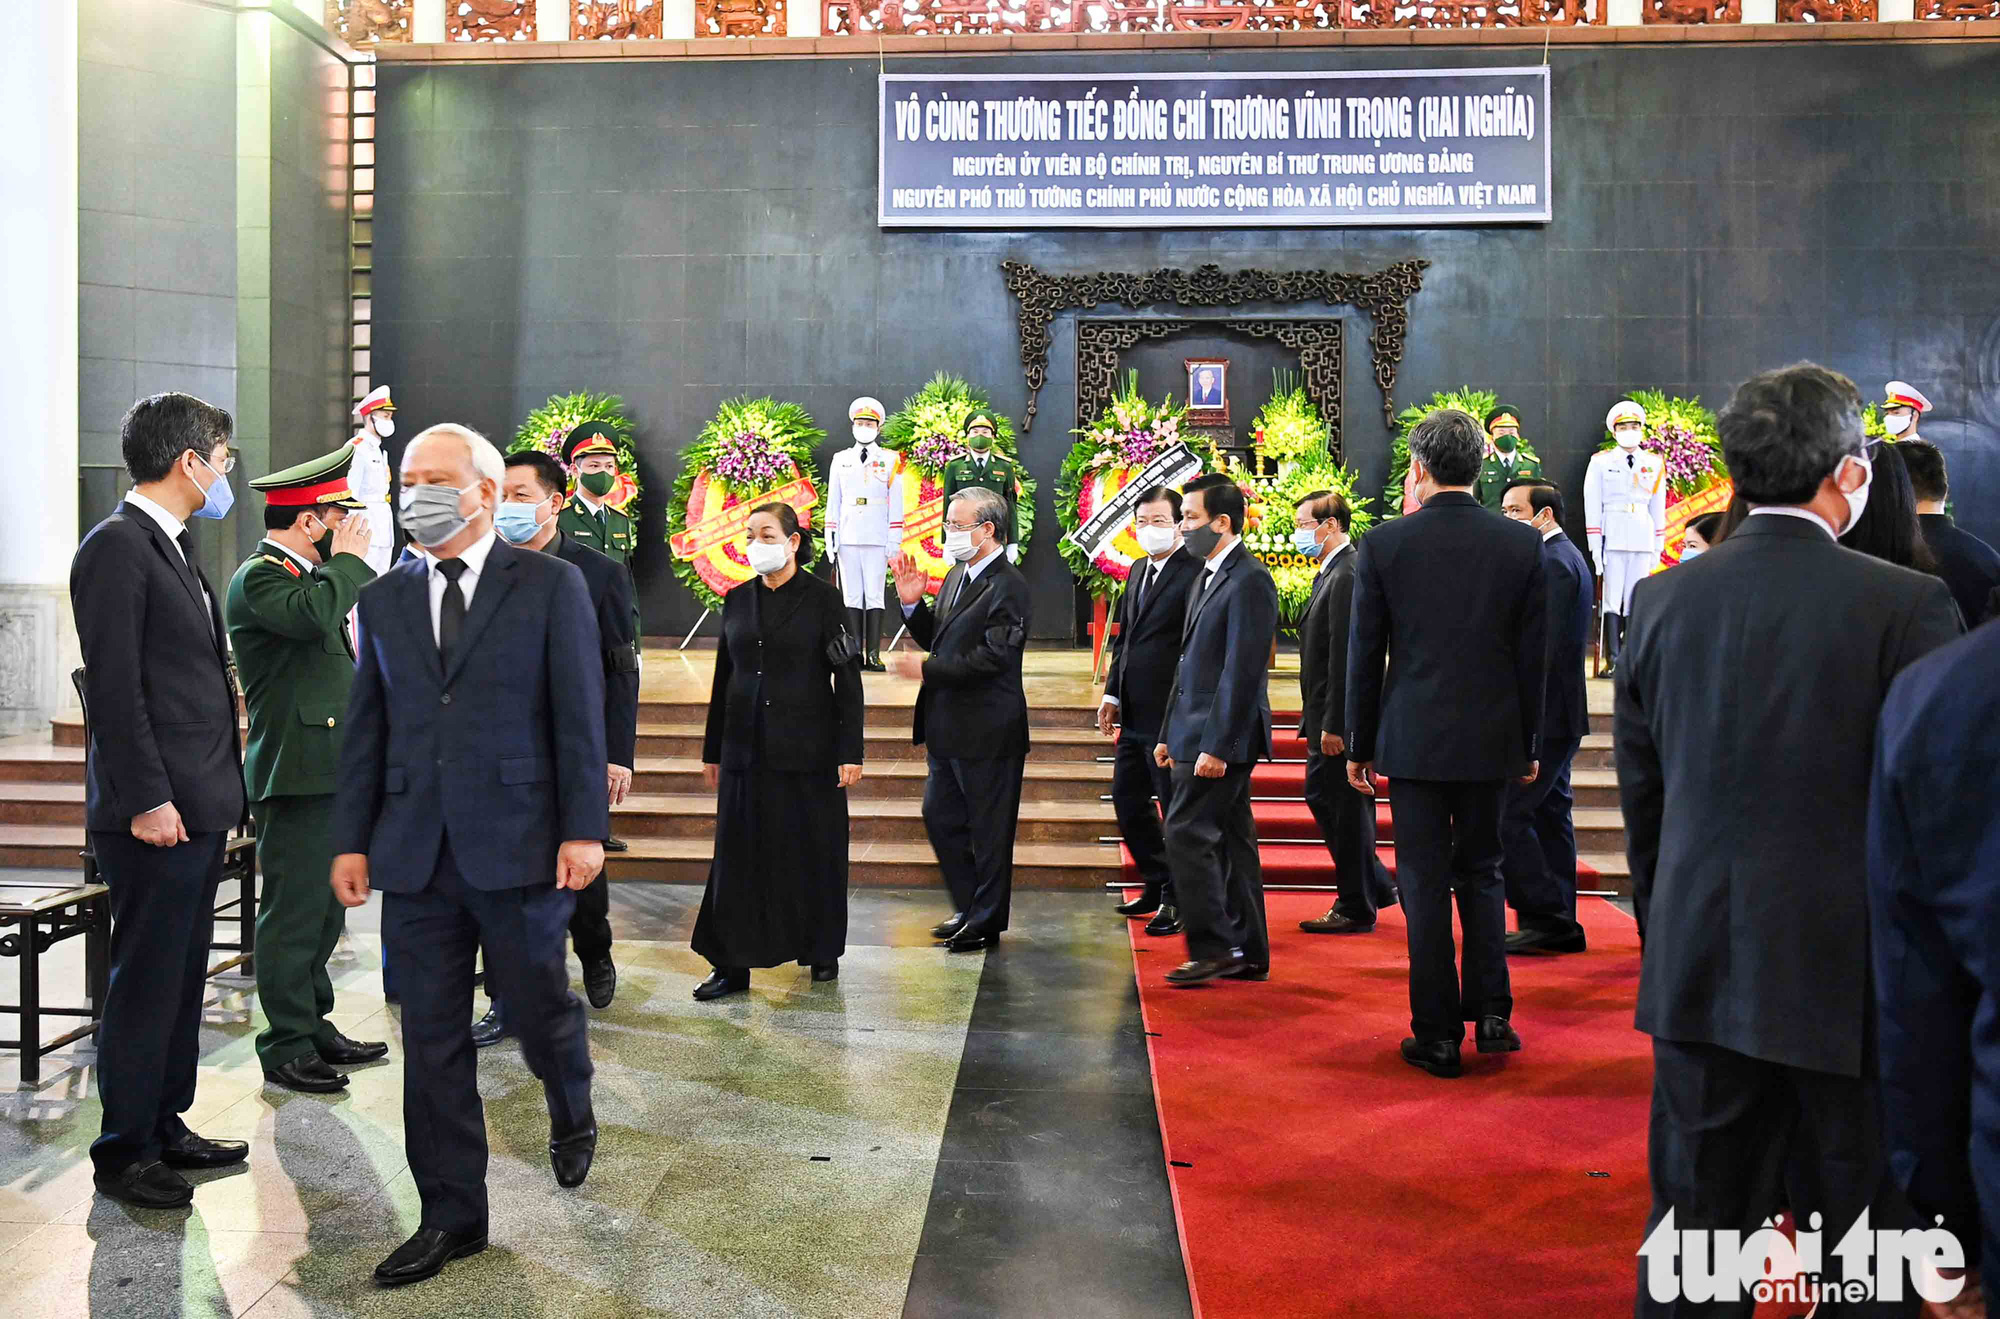 Vietnamese high-ranking officials attend the funeral of former Vietnamese Deputy Prime Minister Truong Vinh Trong in Hanoi, February 21, 2021. Photo: Hoang Phong / Tuoi Tre